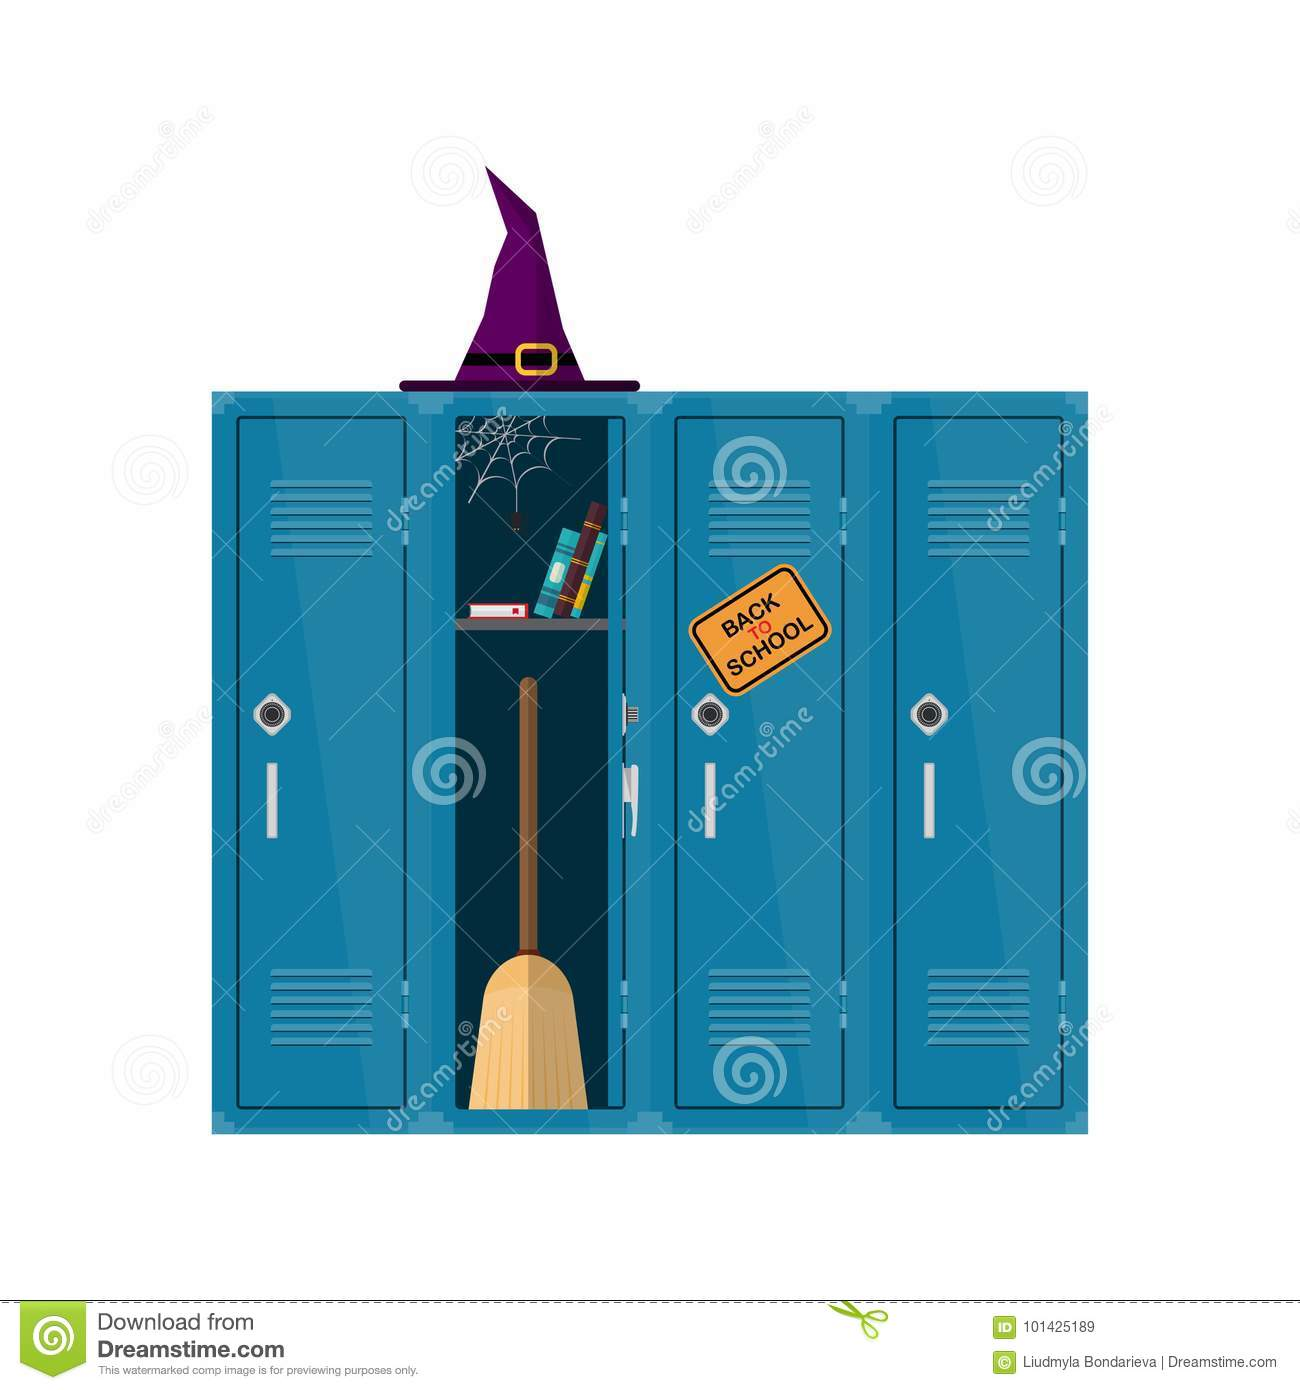 hight resolution of welcome back to school illustration flat vector witch clipart with cupboard with books and broom school locker halloween design colorful interior